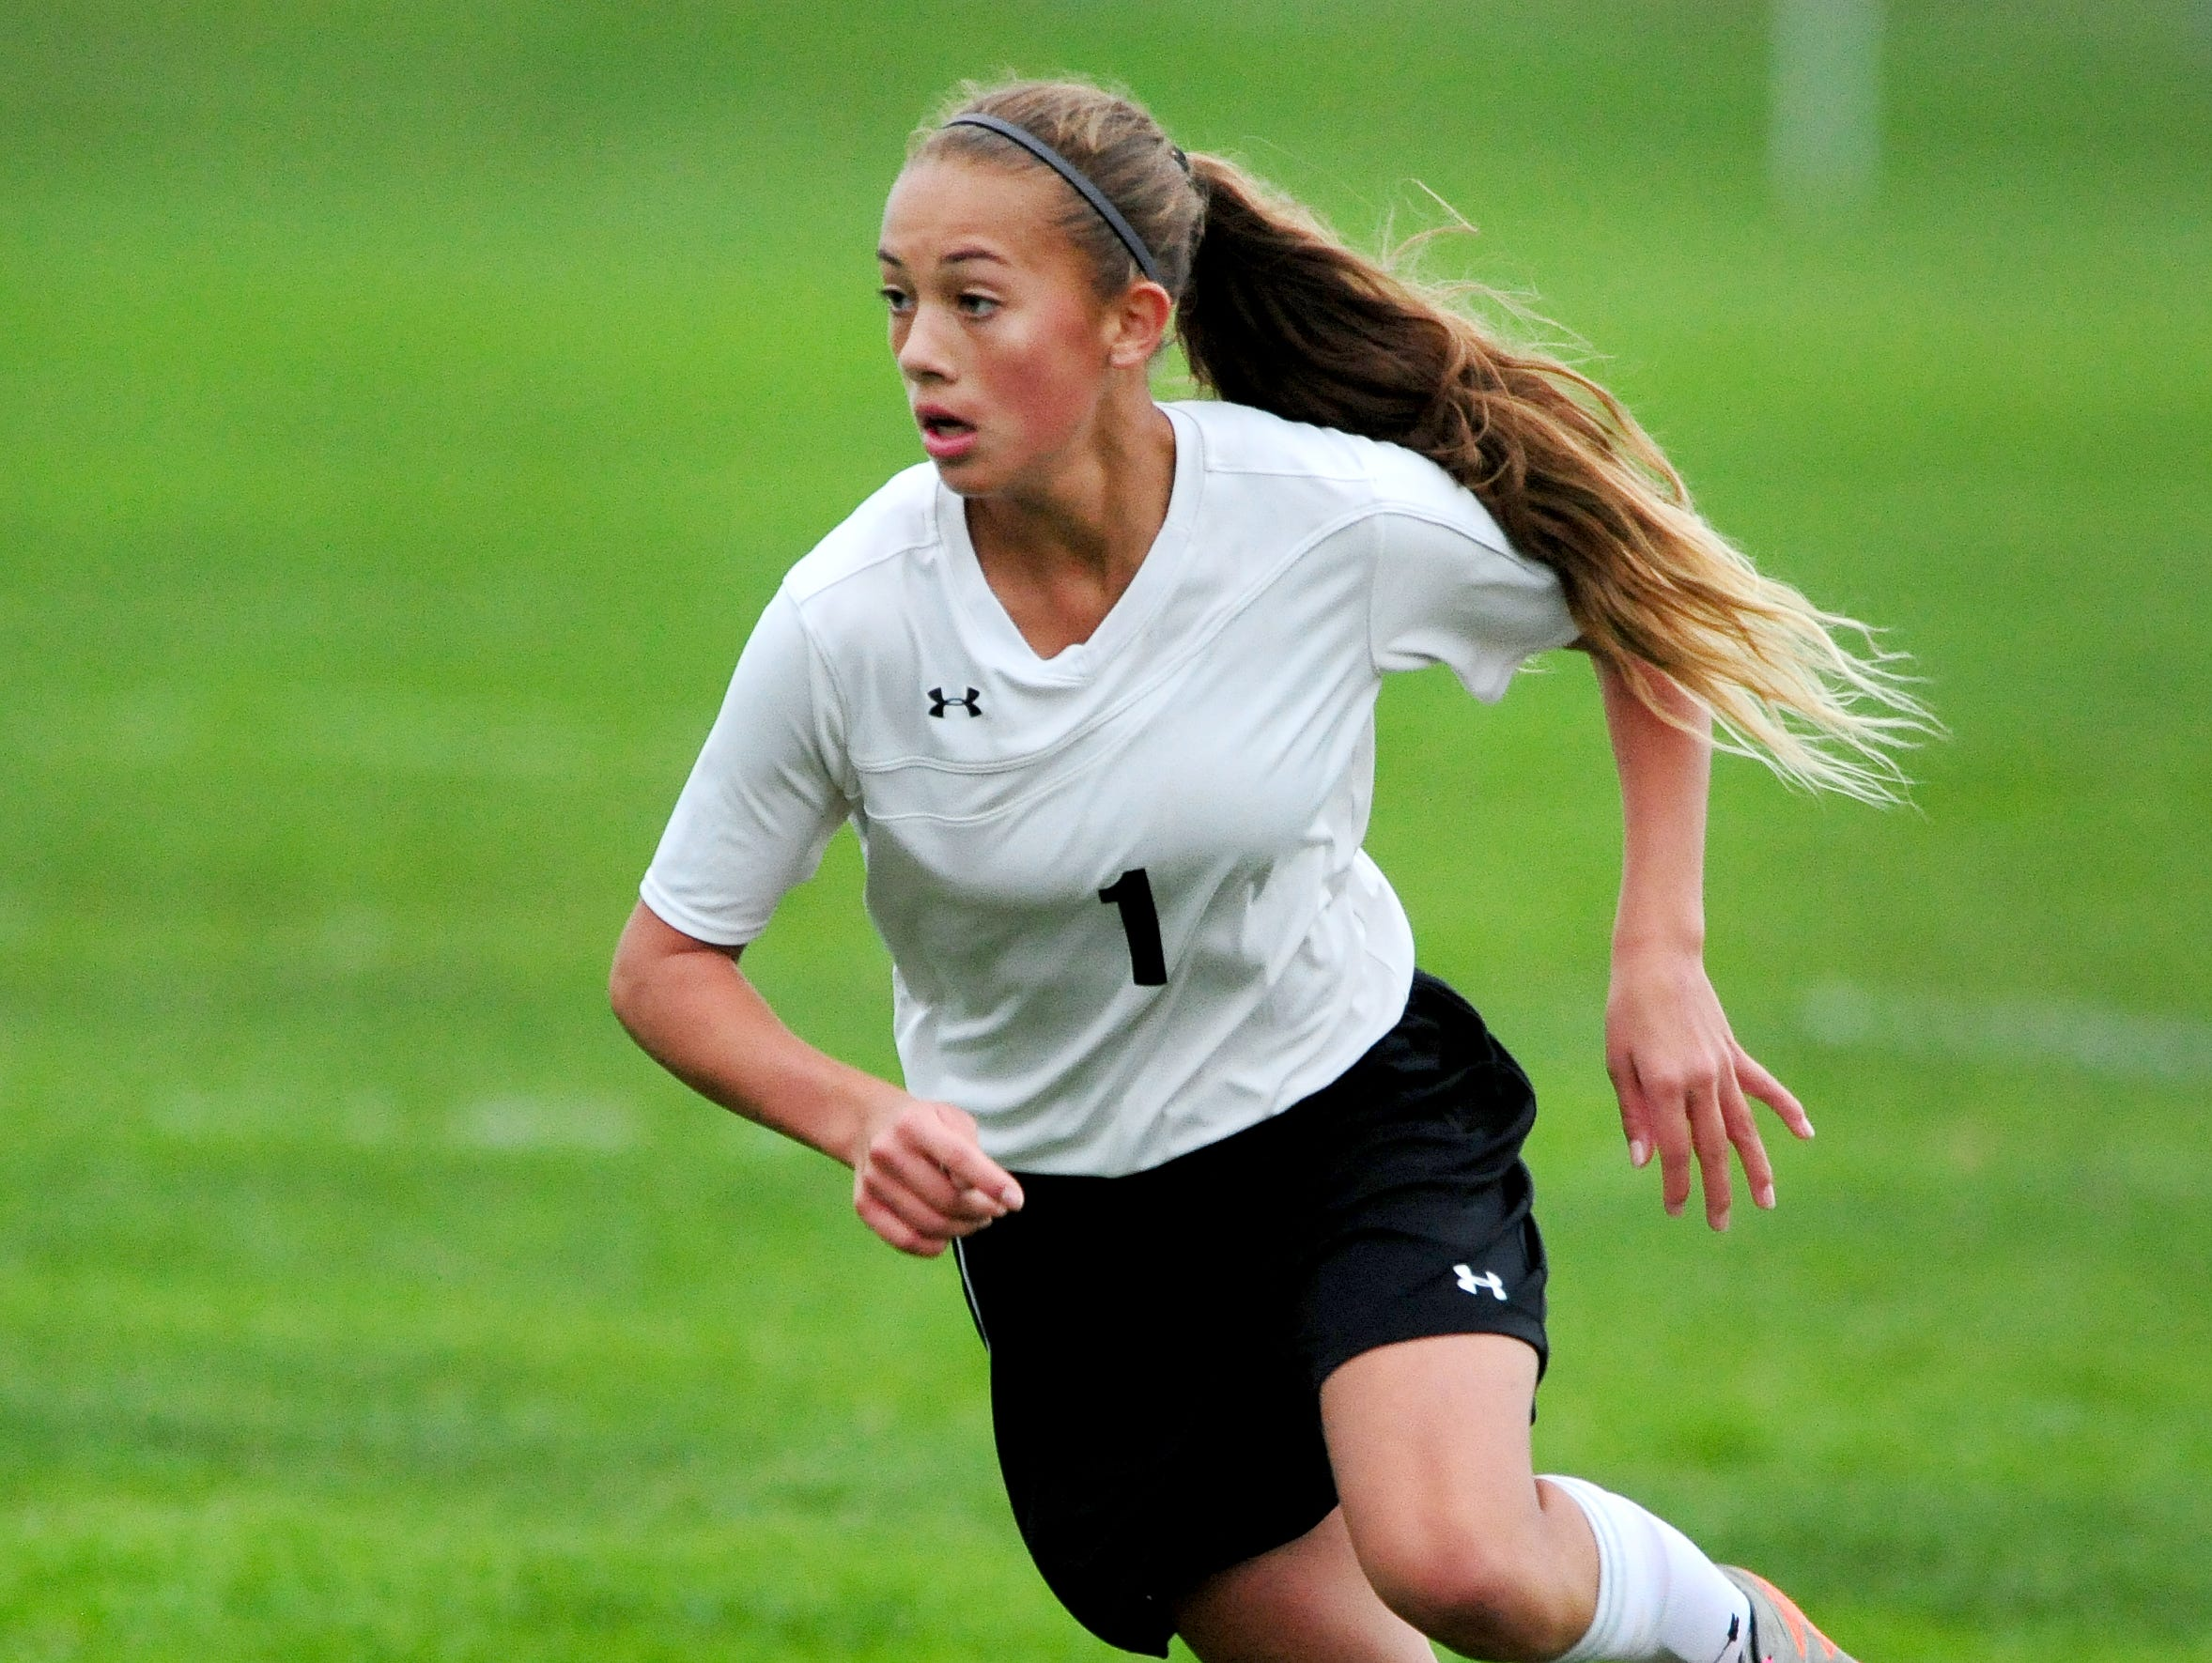 Brooklynn Petterson, who was named Oregon West Conference girls soccer player of the year, excelled in a banner year for sports at Cascade High School.